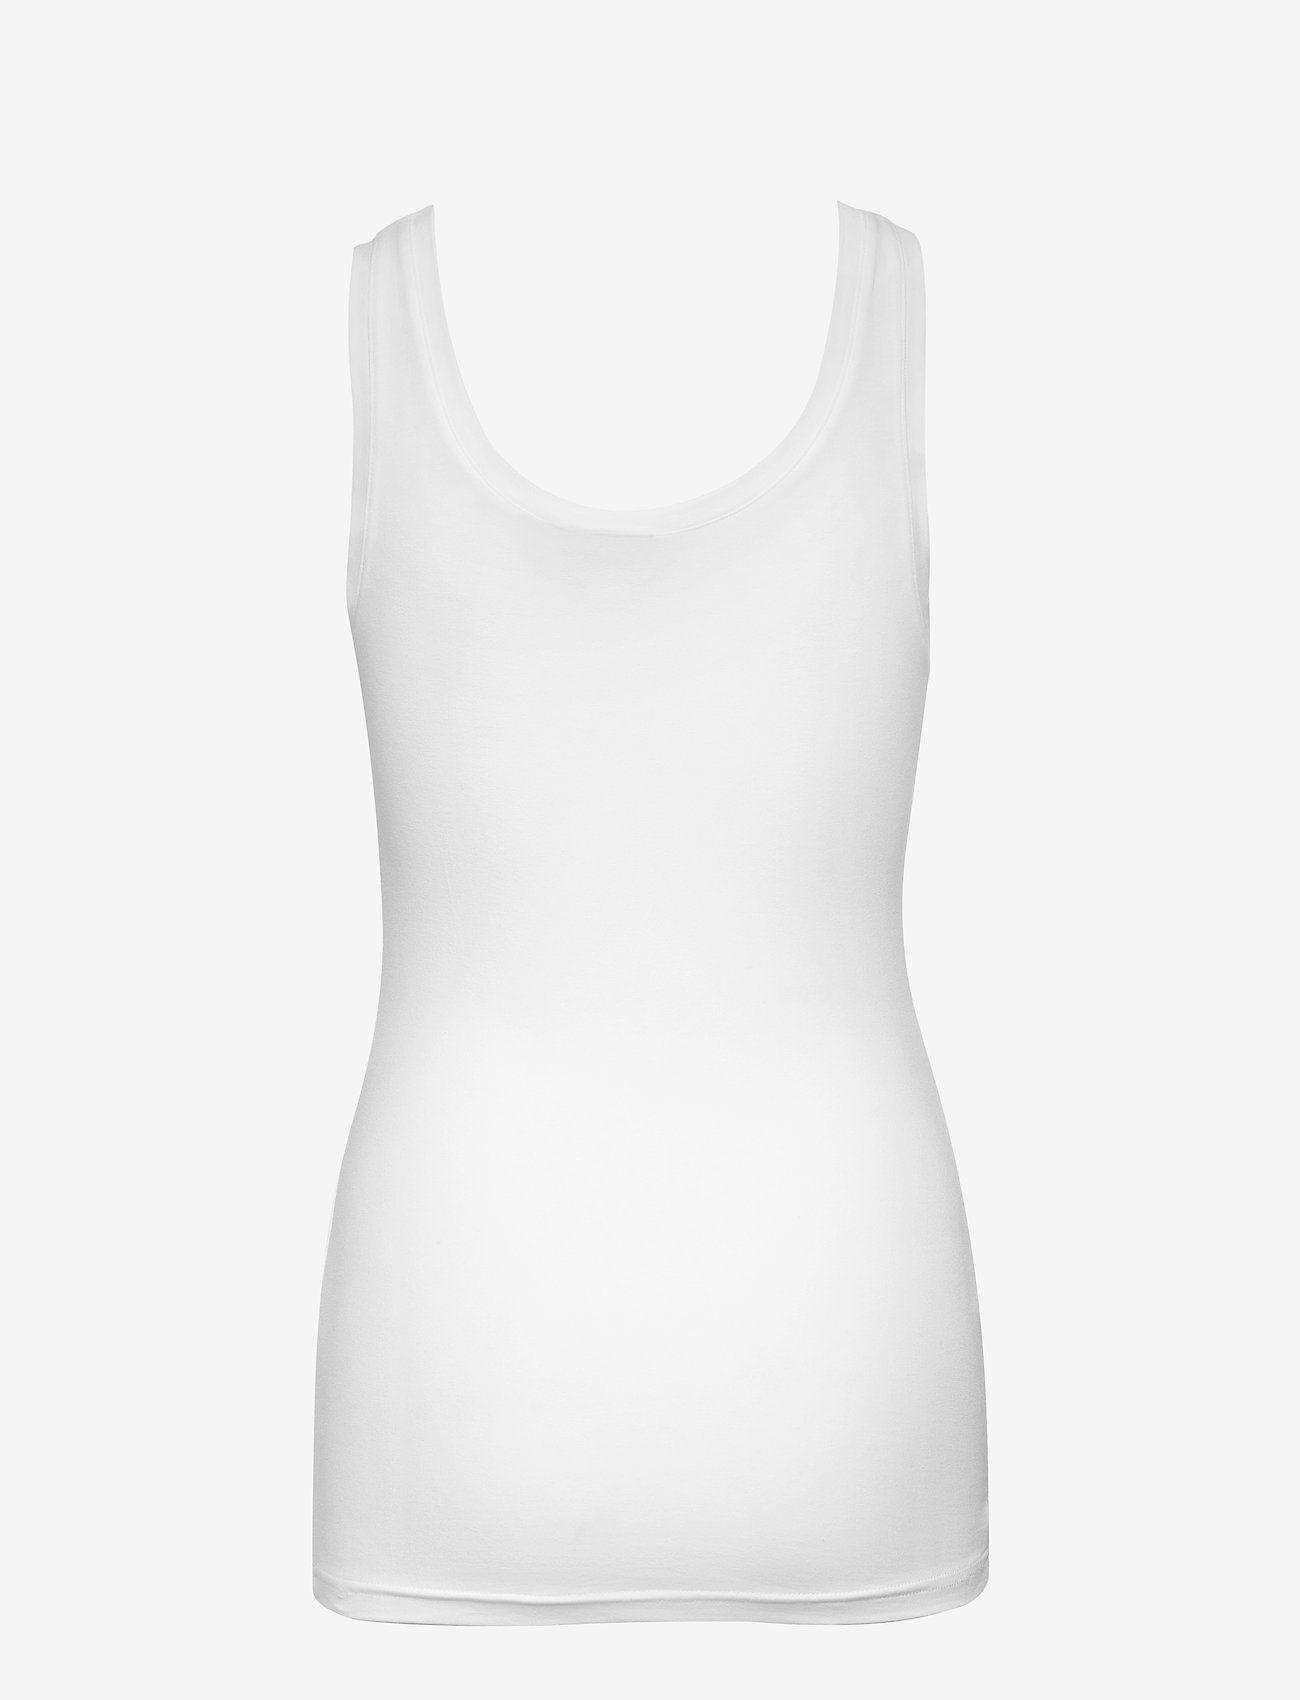 b.young - Pamila top - Jersey - linnen - optical white - 1